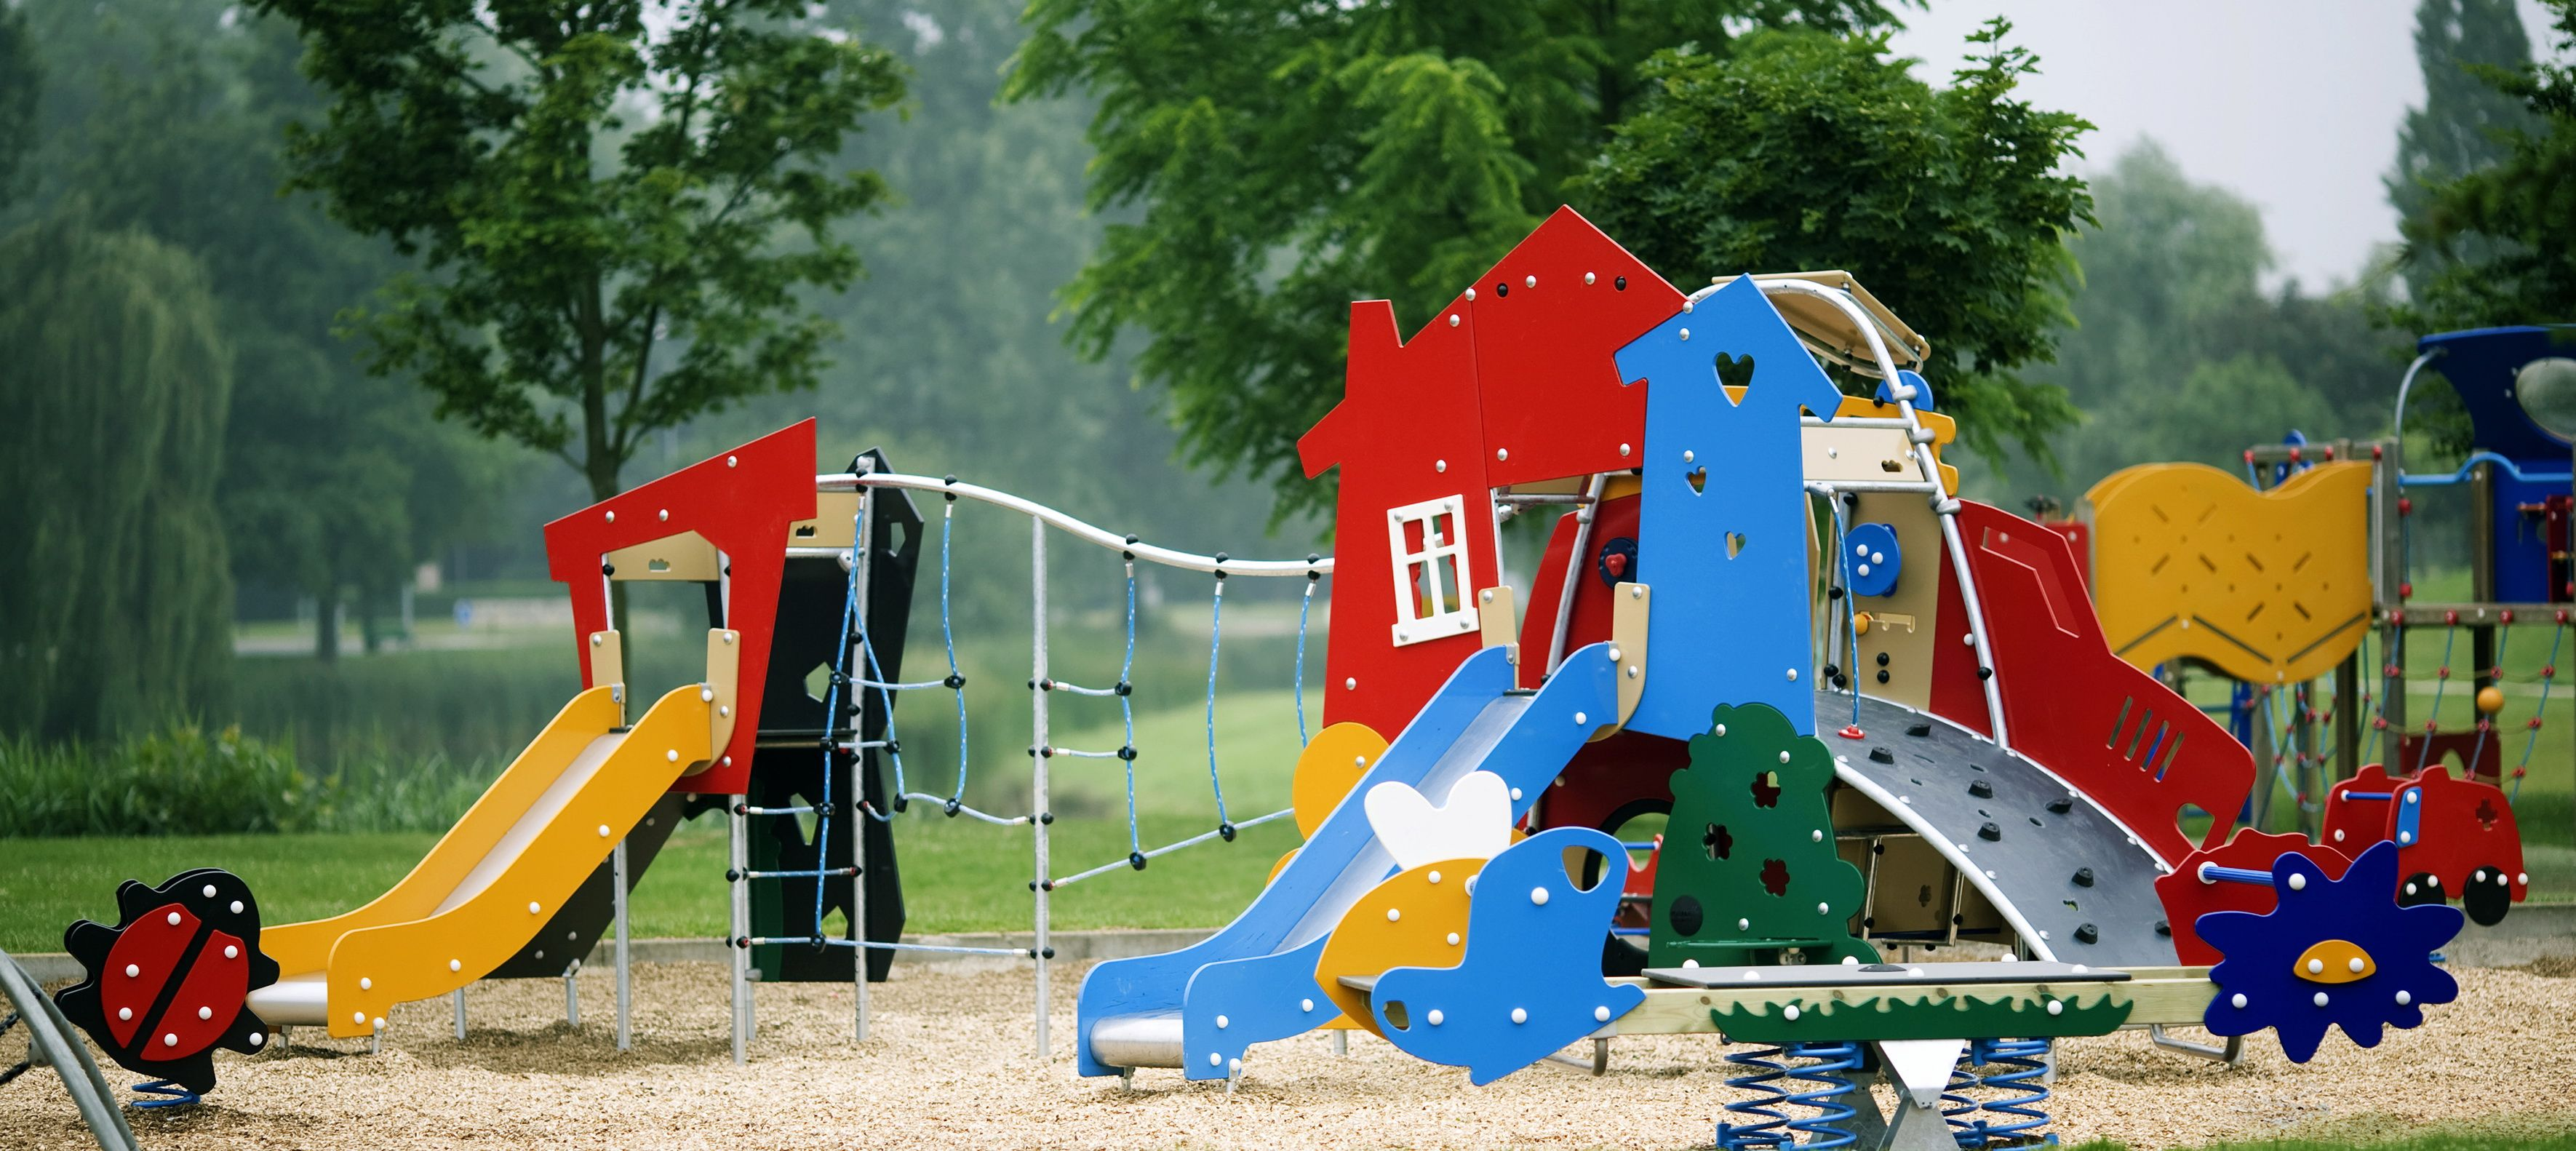 Commercial playground equipment manufacturer kompan for Playground usati